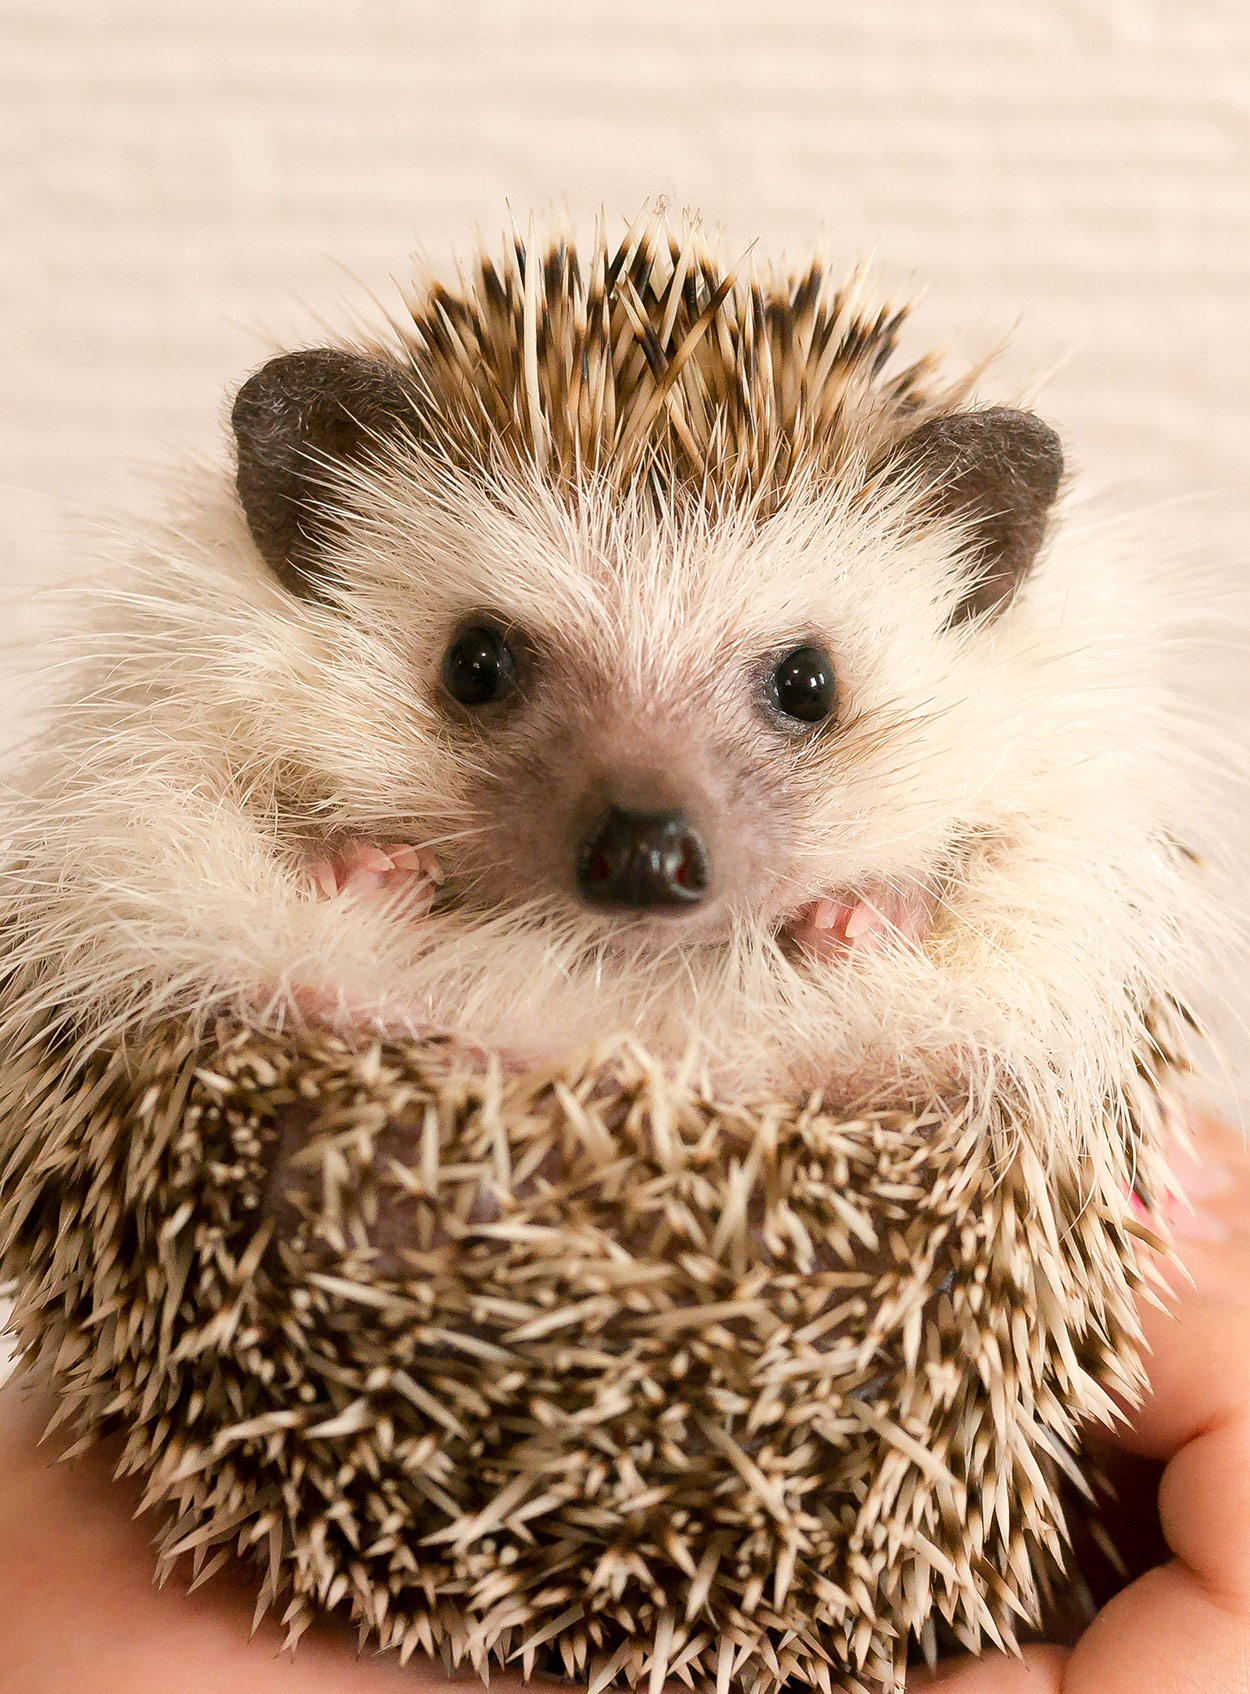 hedgehog names - 200 amazing ideas for naming your prickly pal